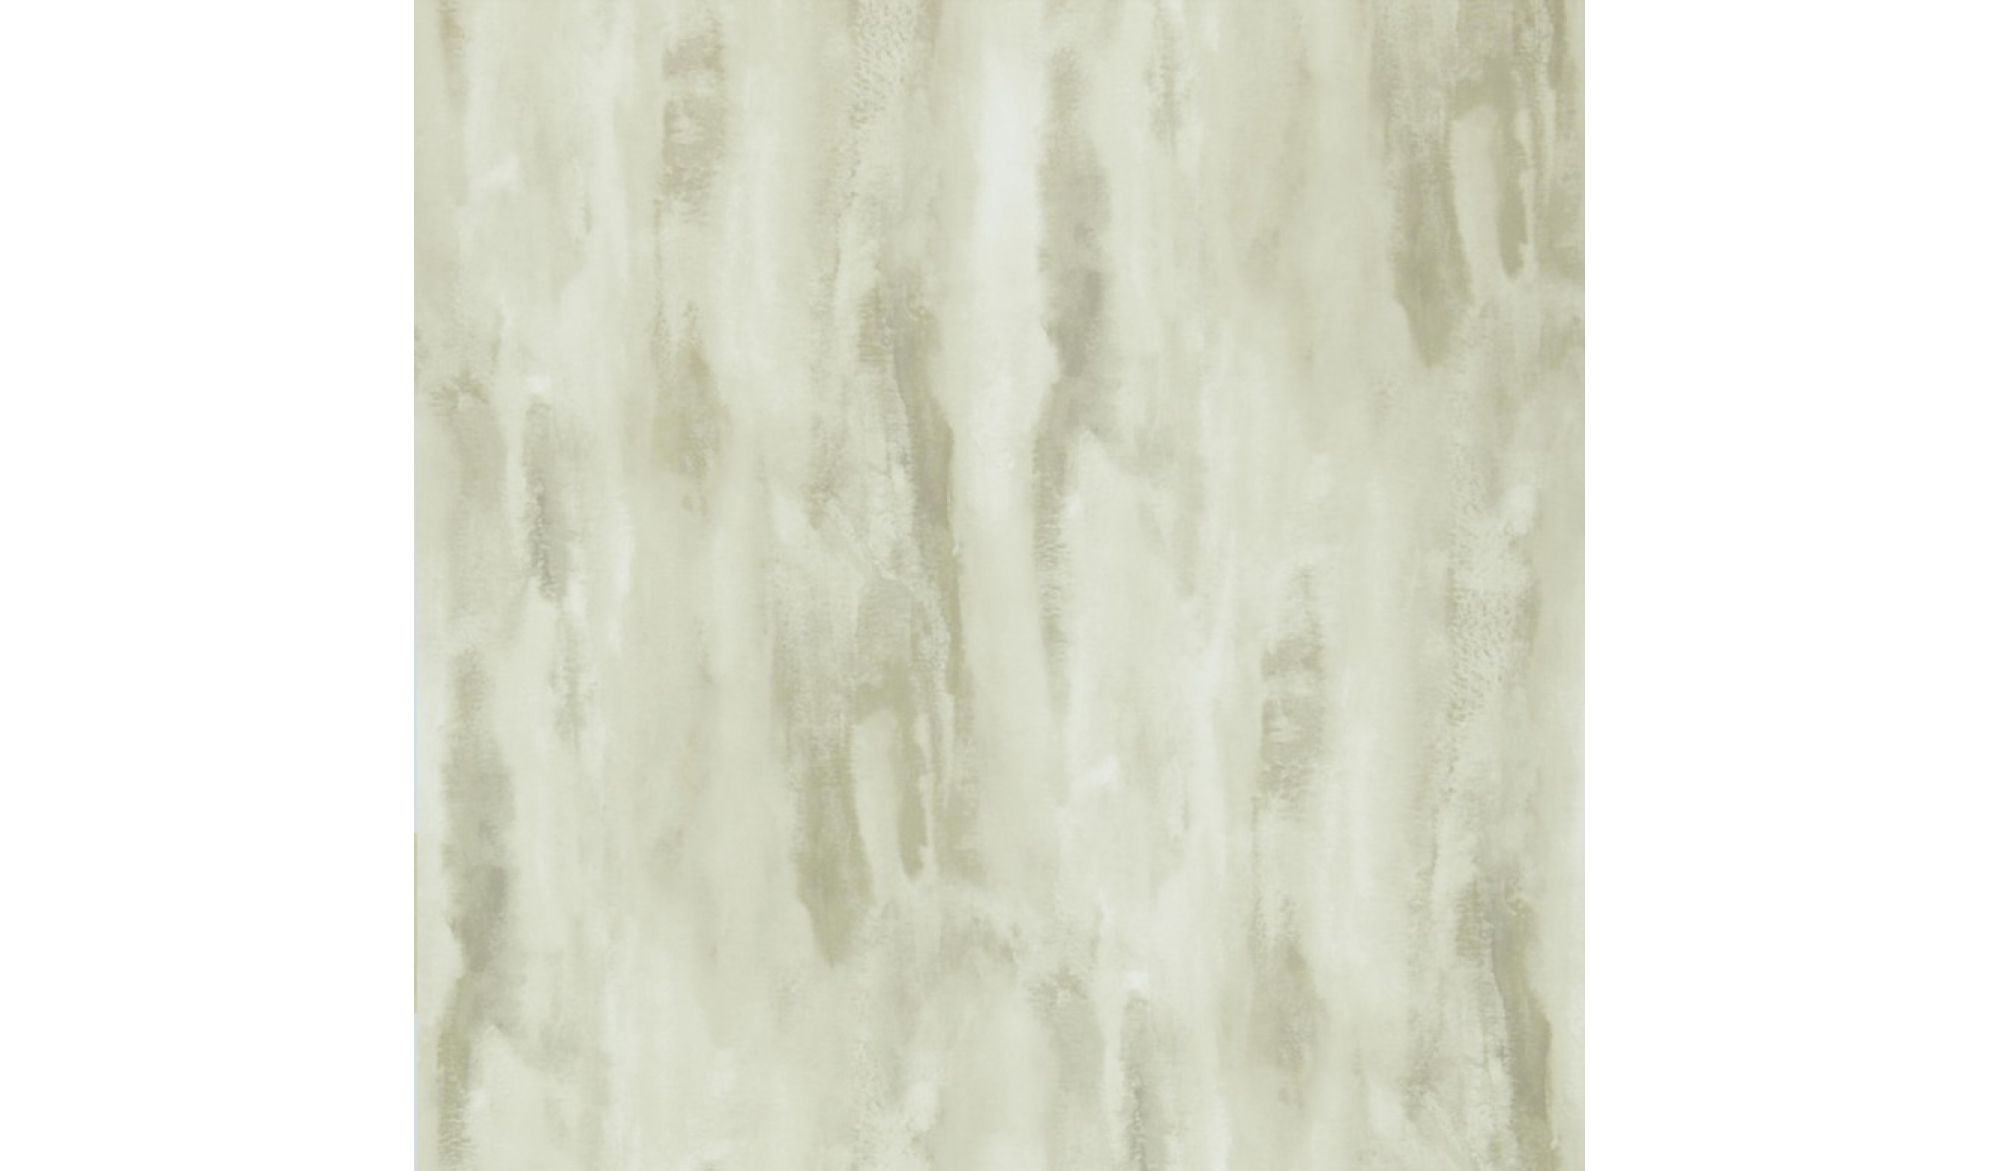 TAPETA AQUARELLE Sesame 54 - Wallpaper alt_tapety_kolor_sesame 54 Melange - Colour